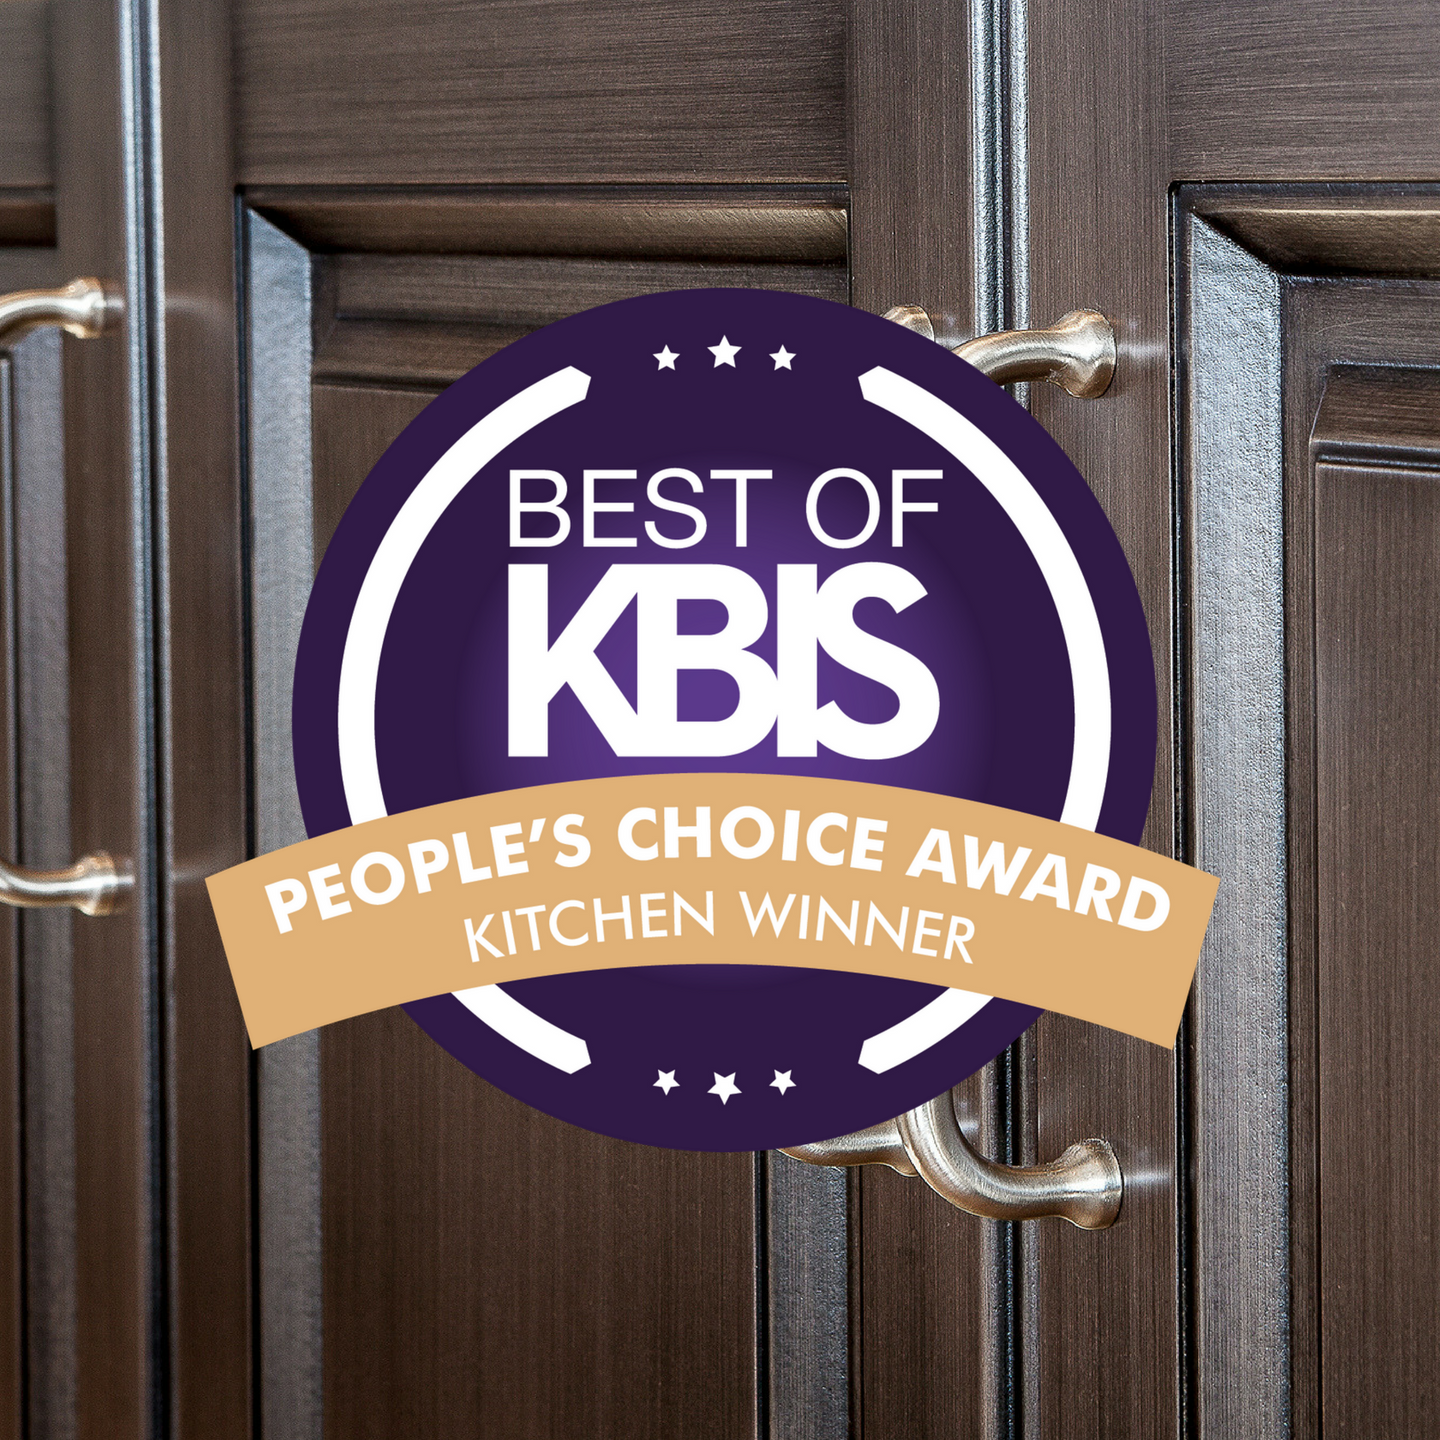 <h1>SUPERIOR CABINETS WINNER BEST OF KBIS – PEOPLE'S CHOICE</h1>